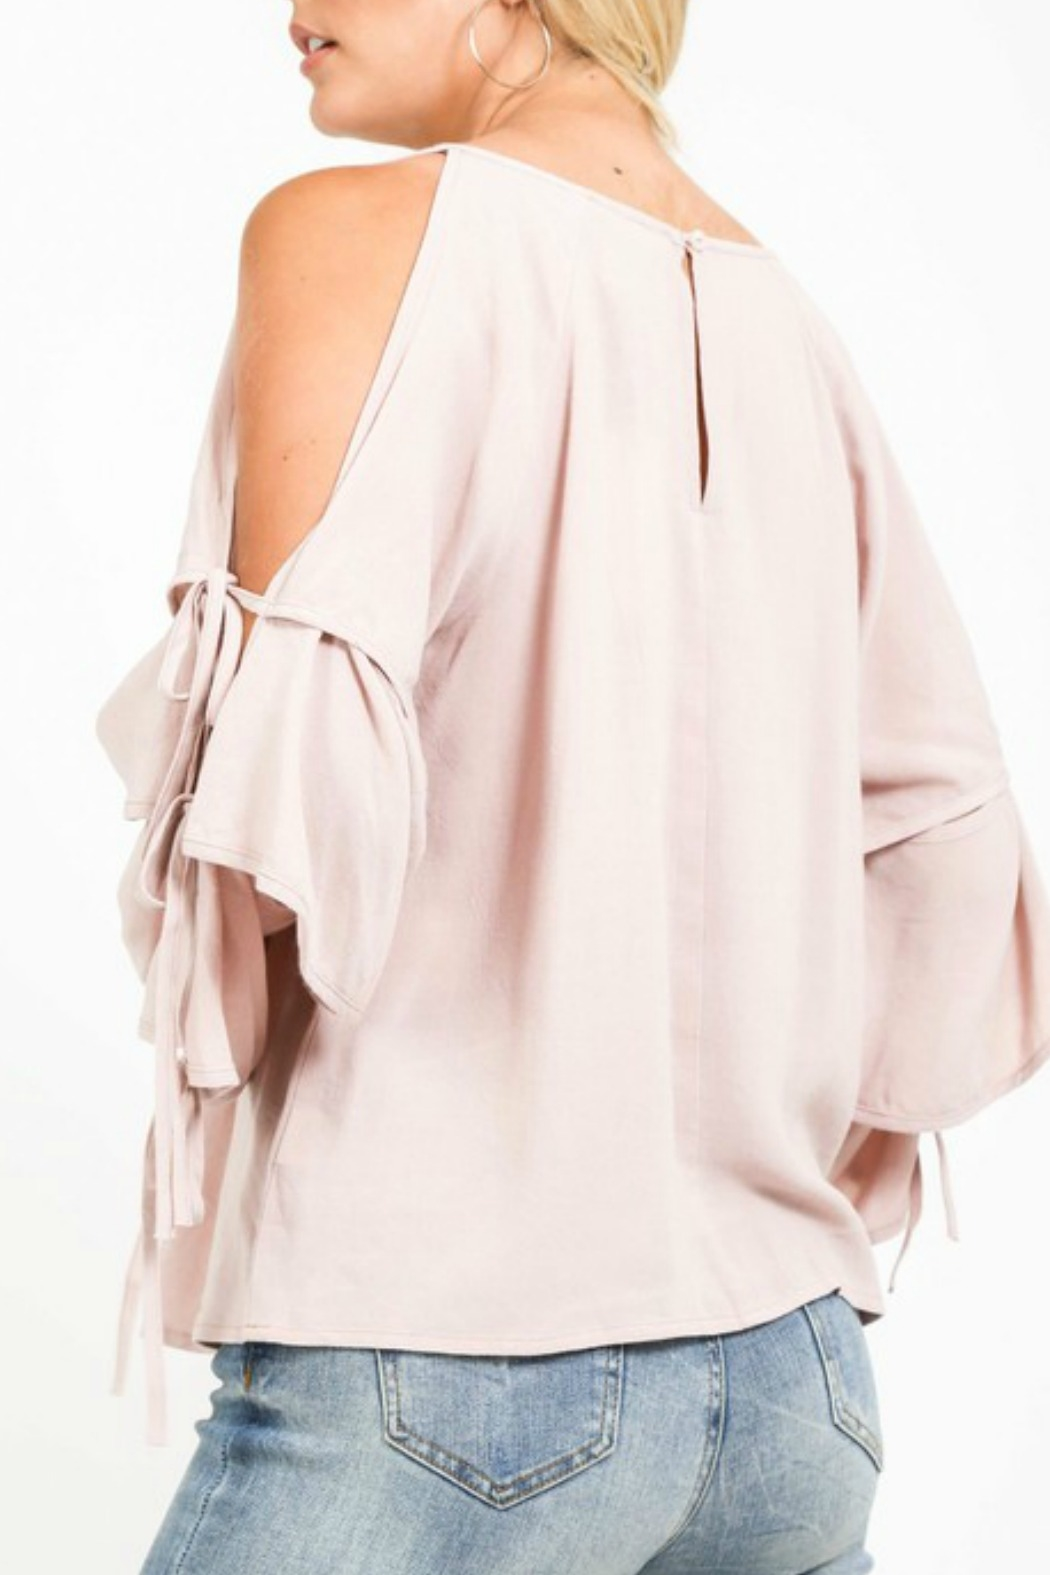 Very J Tiered Sleeve Top - Side Cropped Image